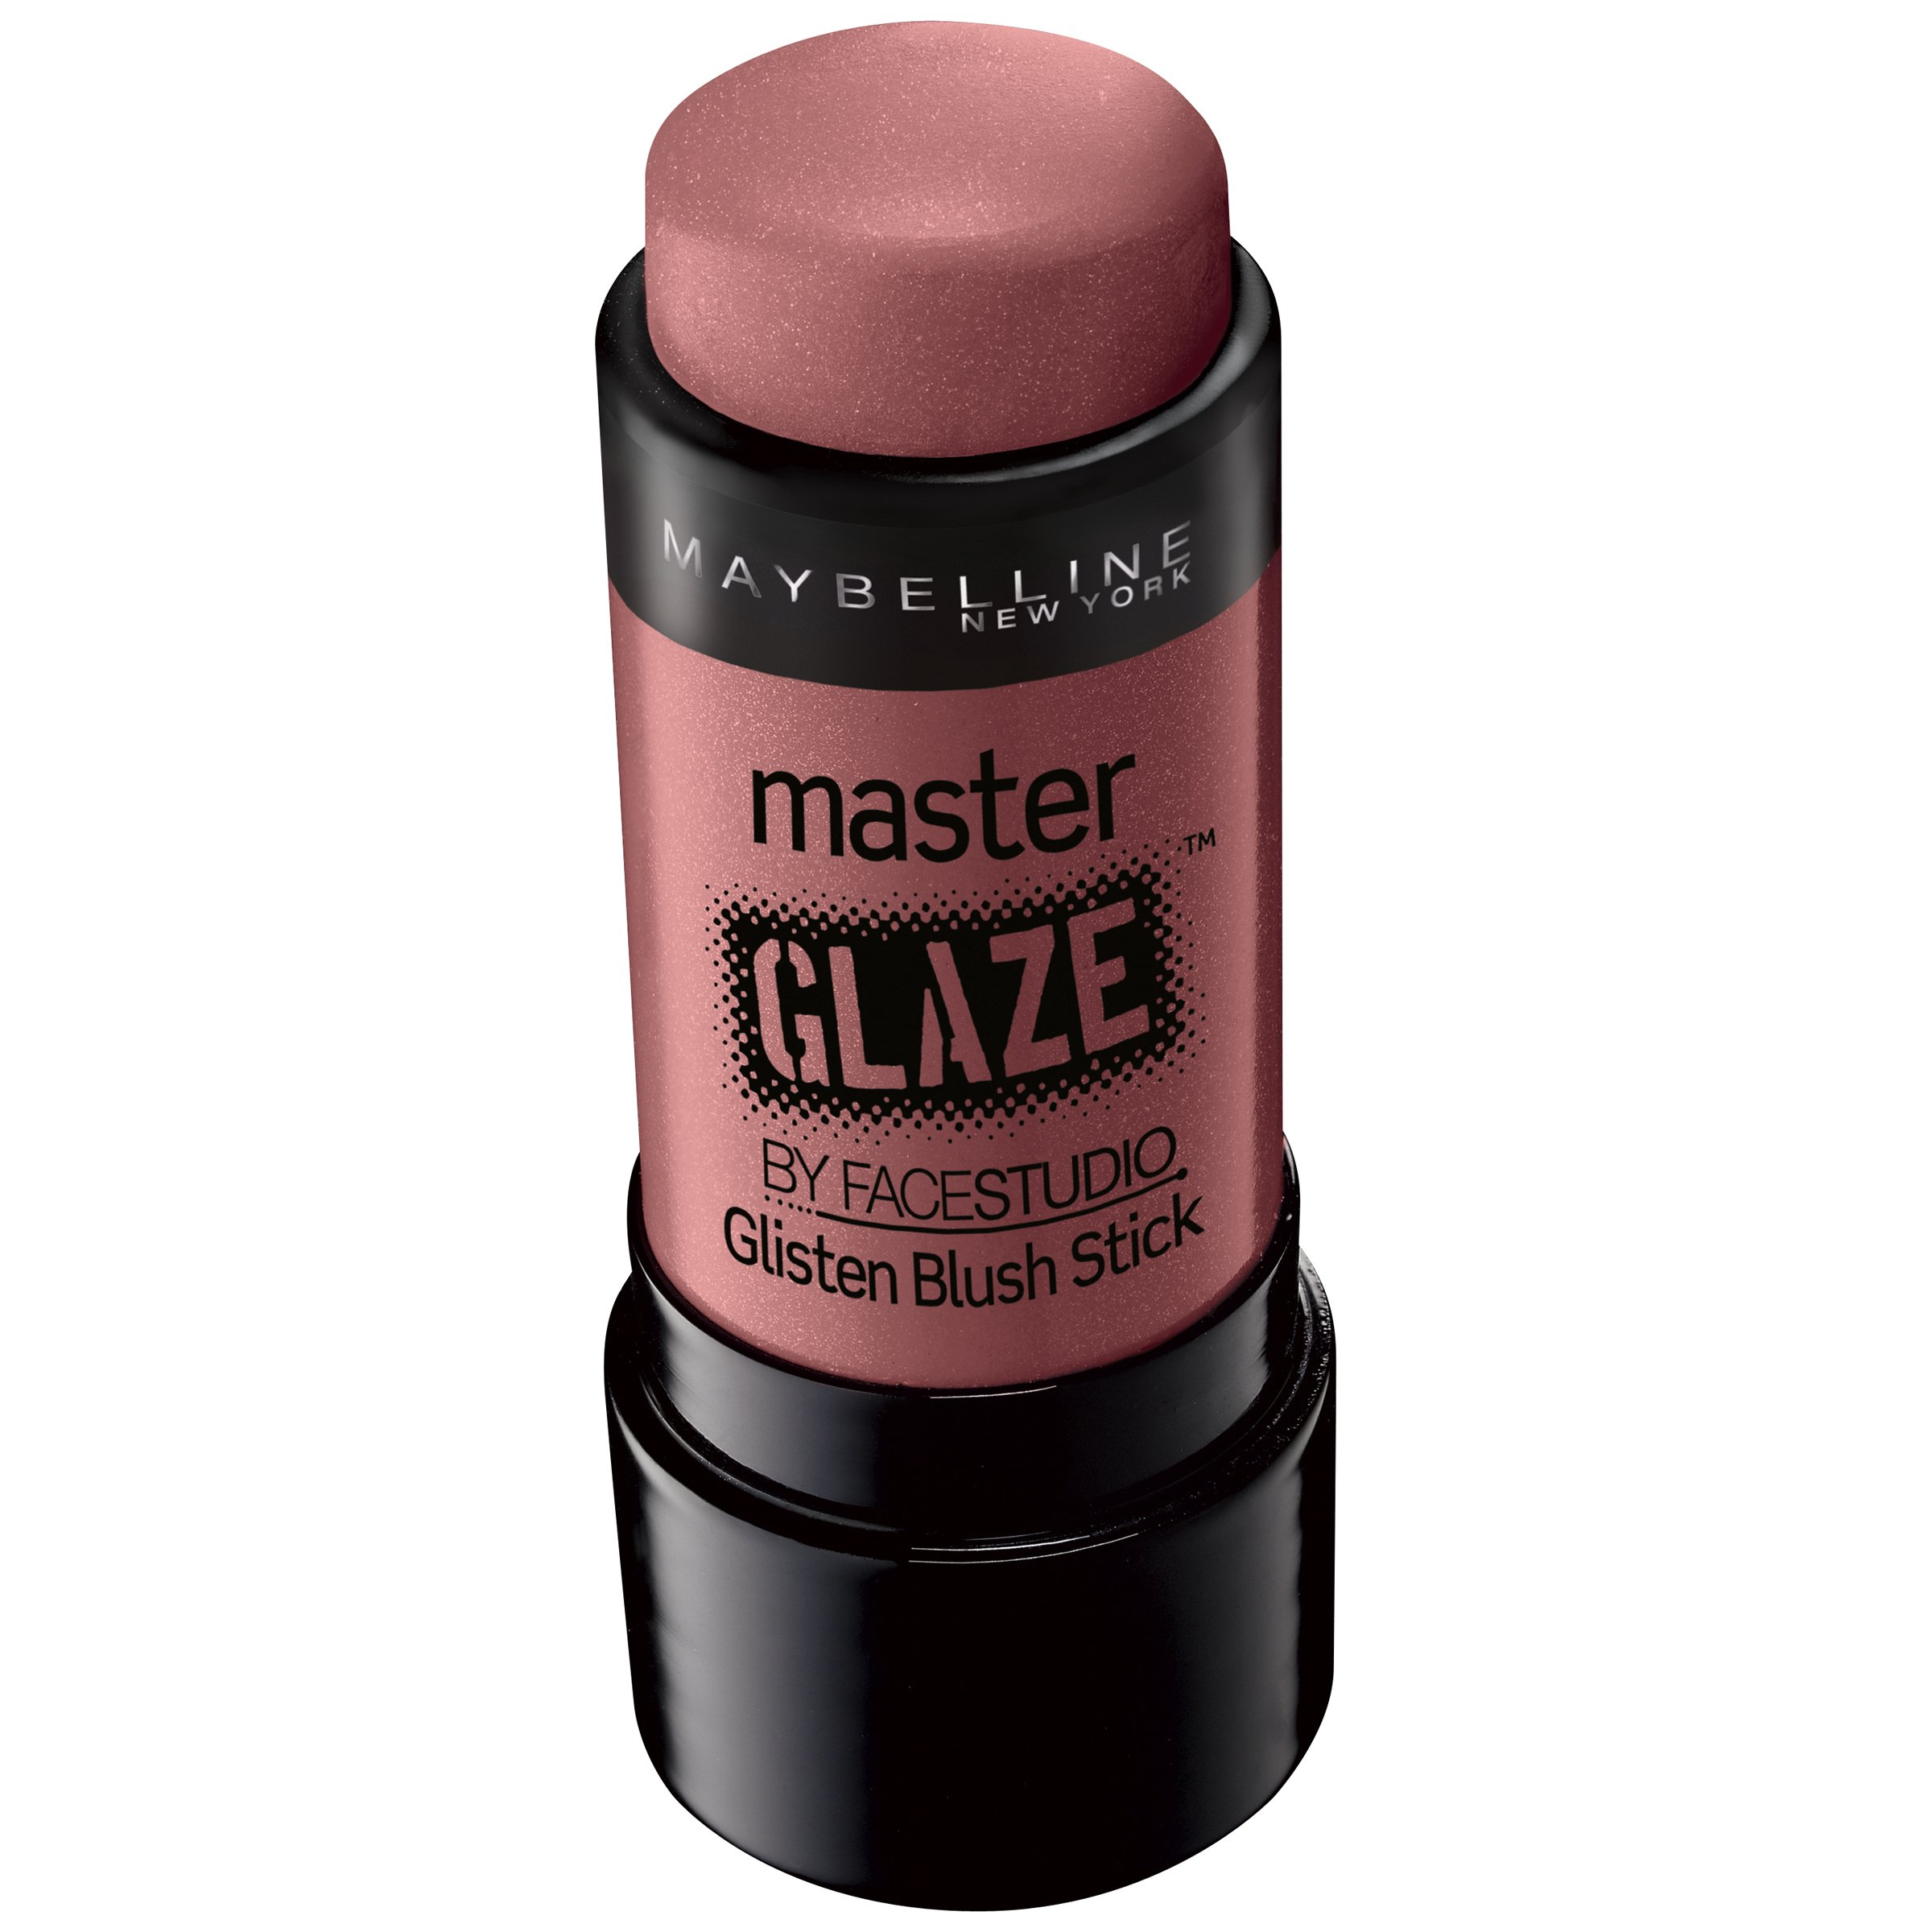 Maybelline New York Face Studio Master Glaze Glisten Blush Stick, Make A Mauve, 0.24 Ounce by Maybelline New York